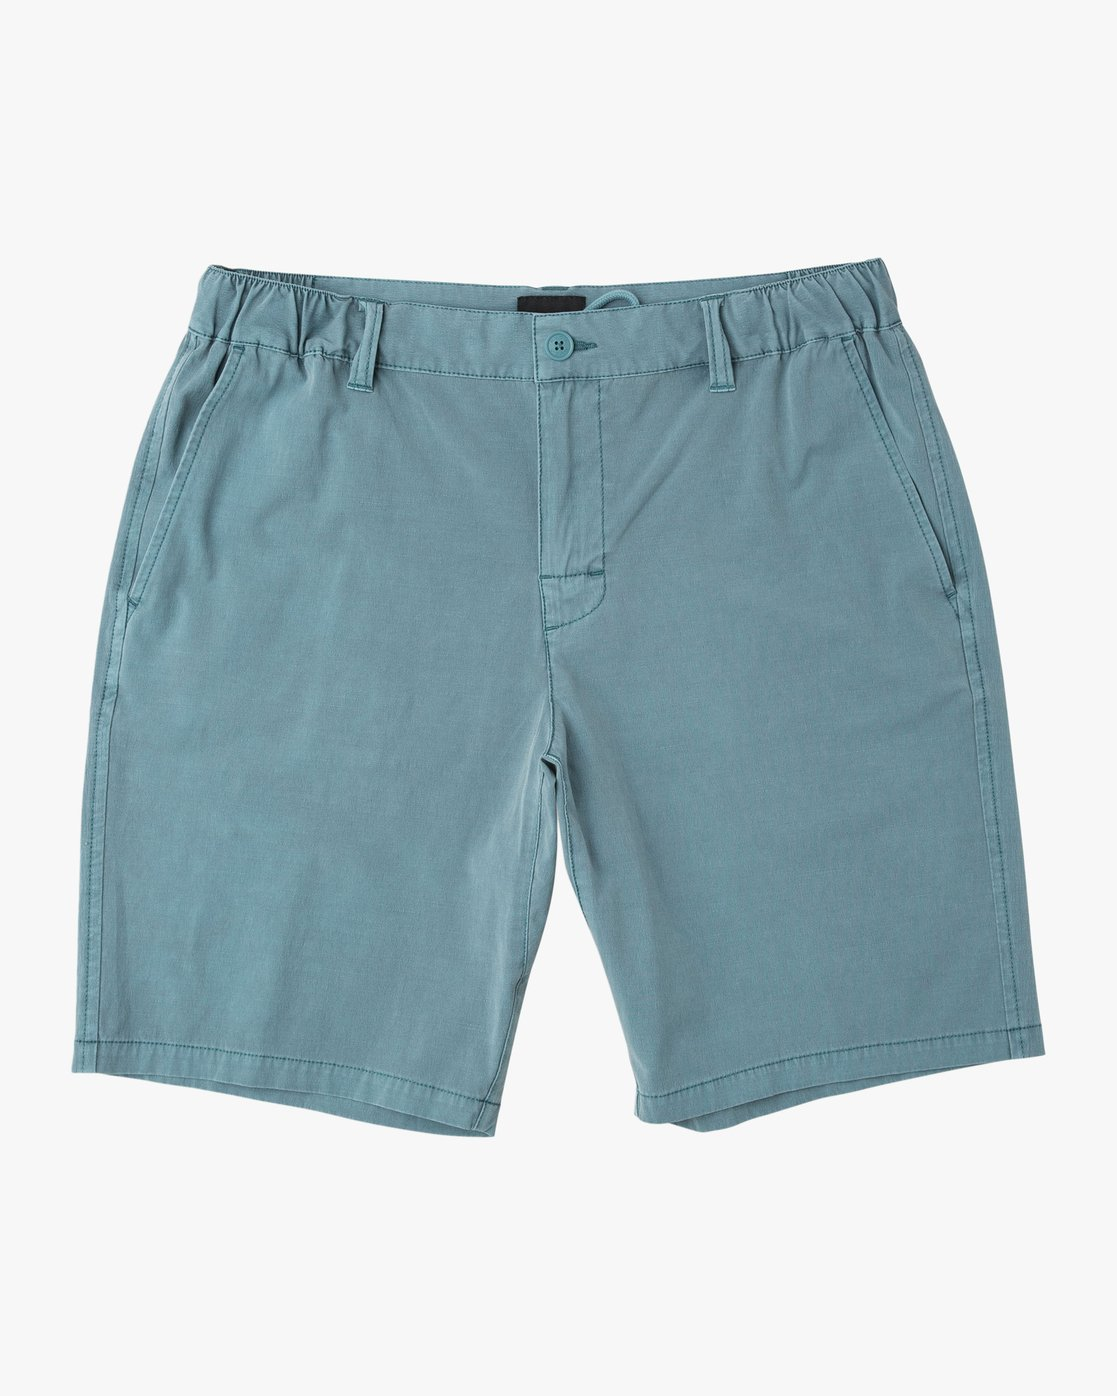 0 All Time Rinsed Coastal Hybrid Short Blue M211TRCR RVCA